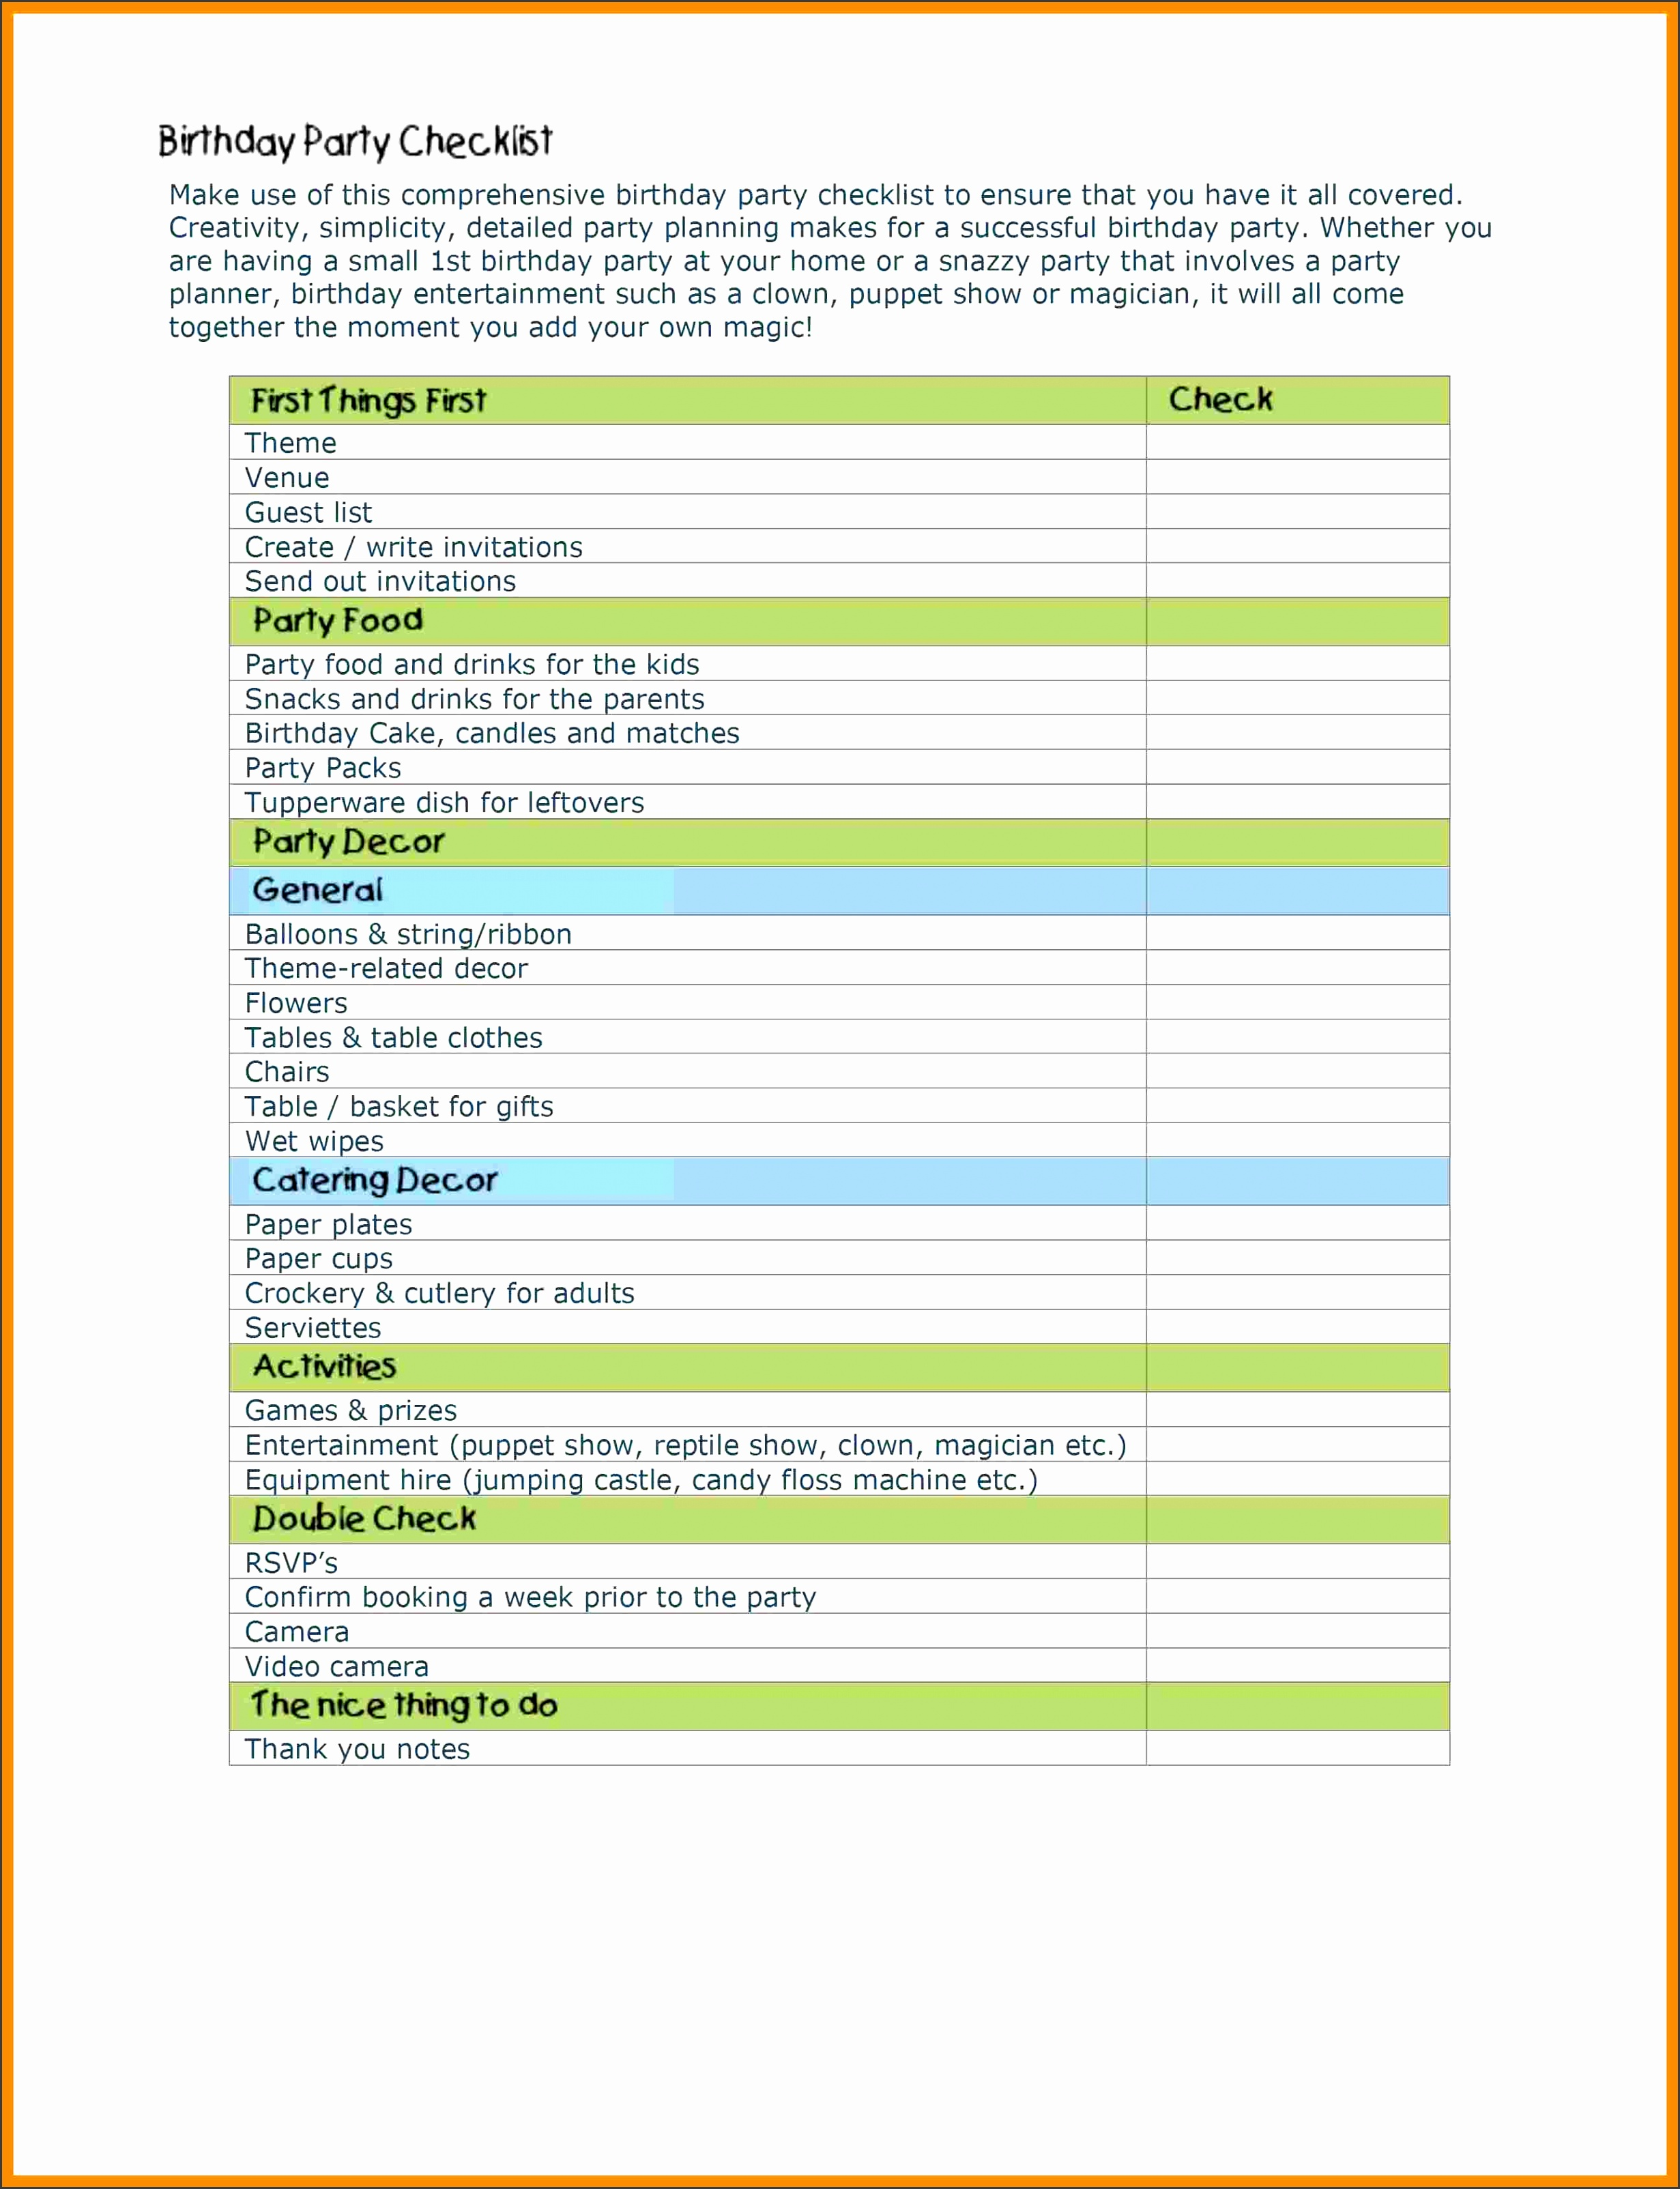 Free Templates Birthday Party Checklist Template Free Templates Birthday Party Checklist Template